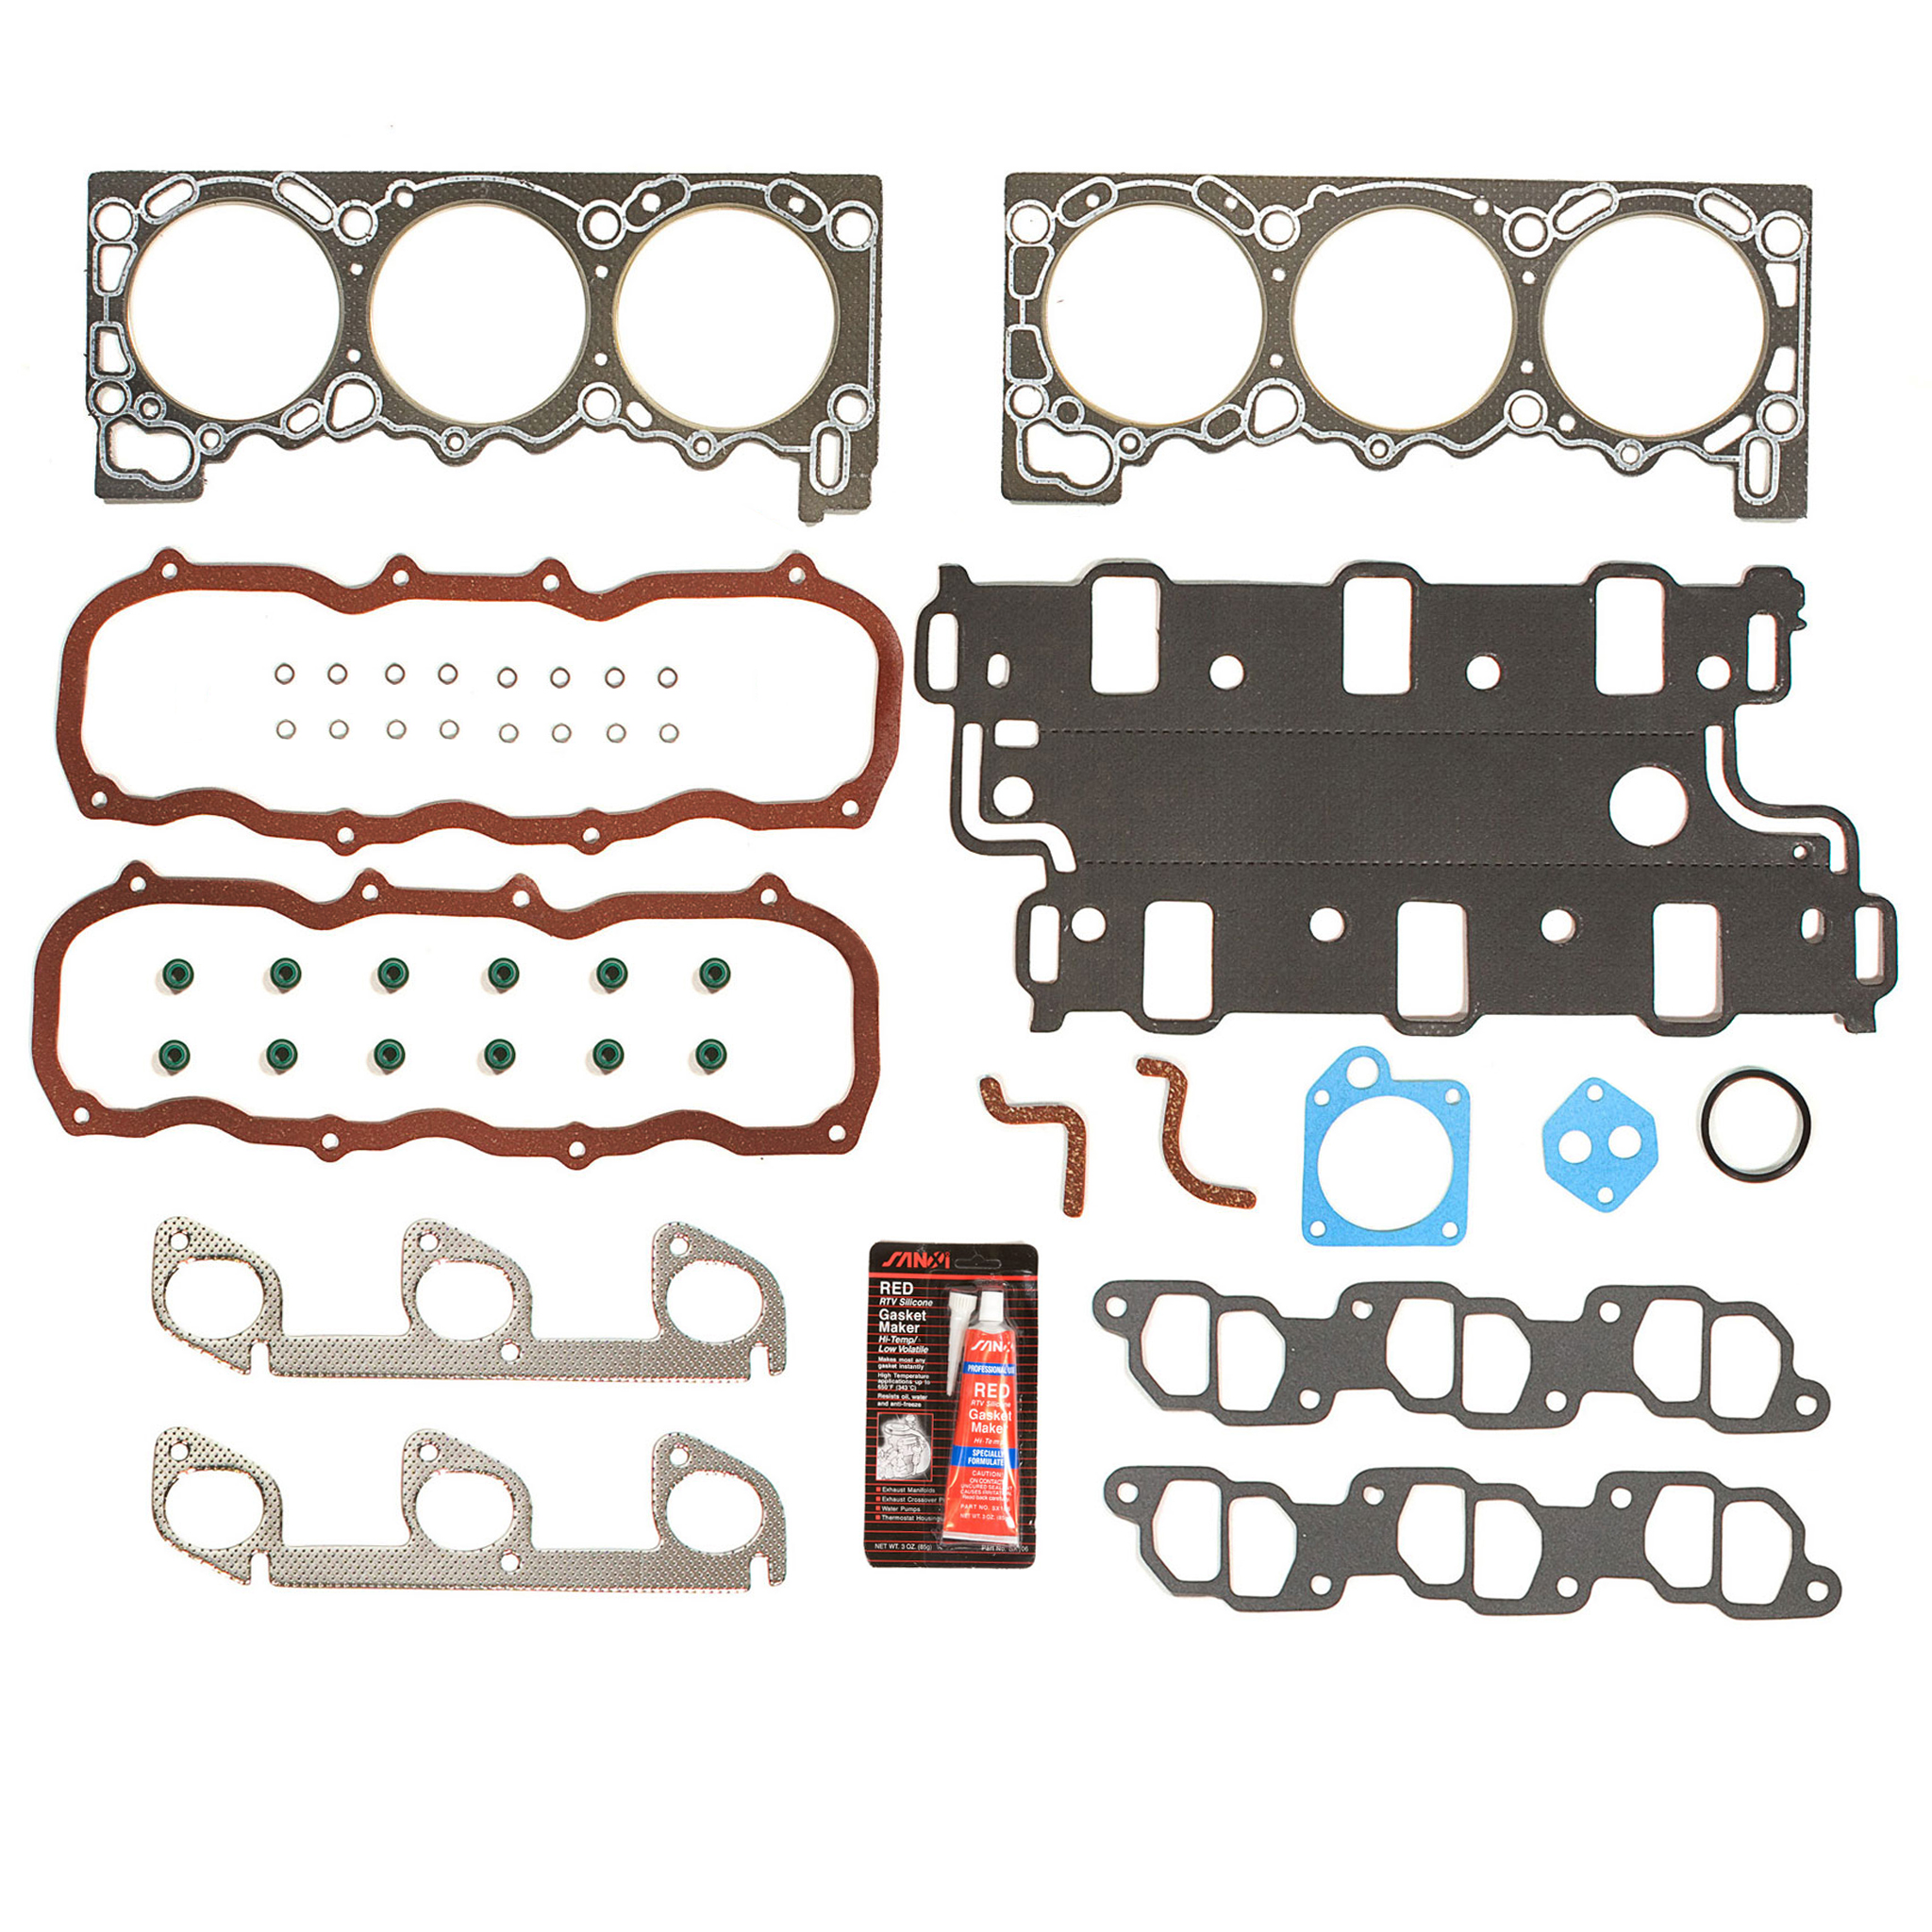 Evergreen TKTCS20700WP Fits 97-10 Ford Explorer Ranger Mazda B4000 Mercury 4.0 245 SOHC Timing Chain Kit Timing Cover Gaskets GMB Water Pump